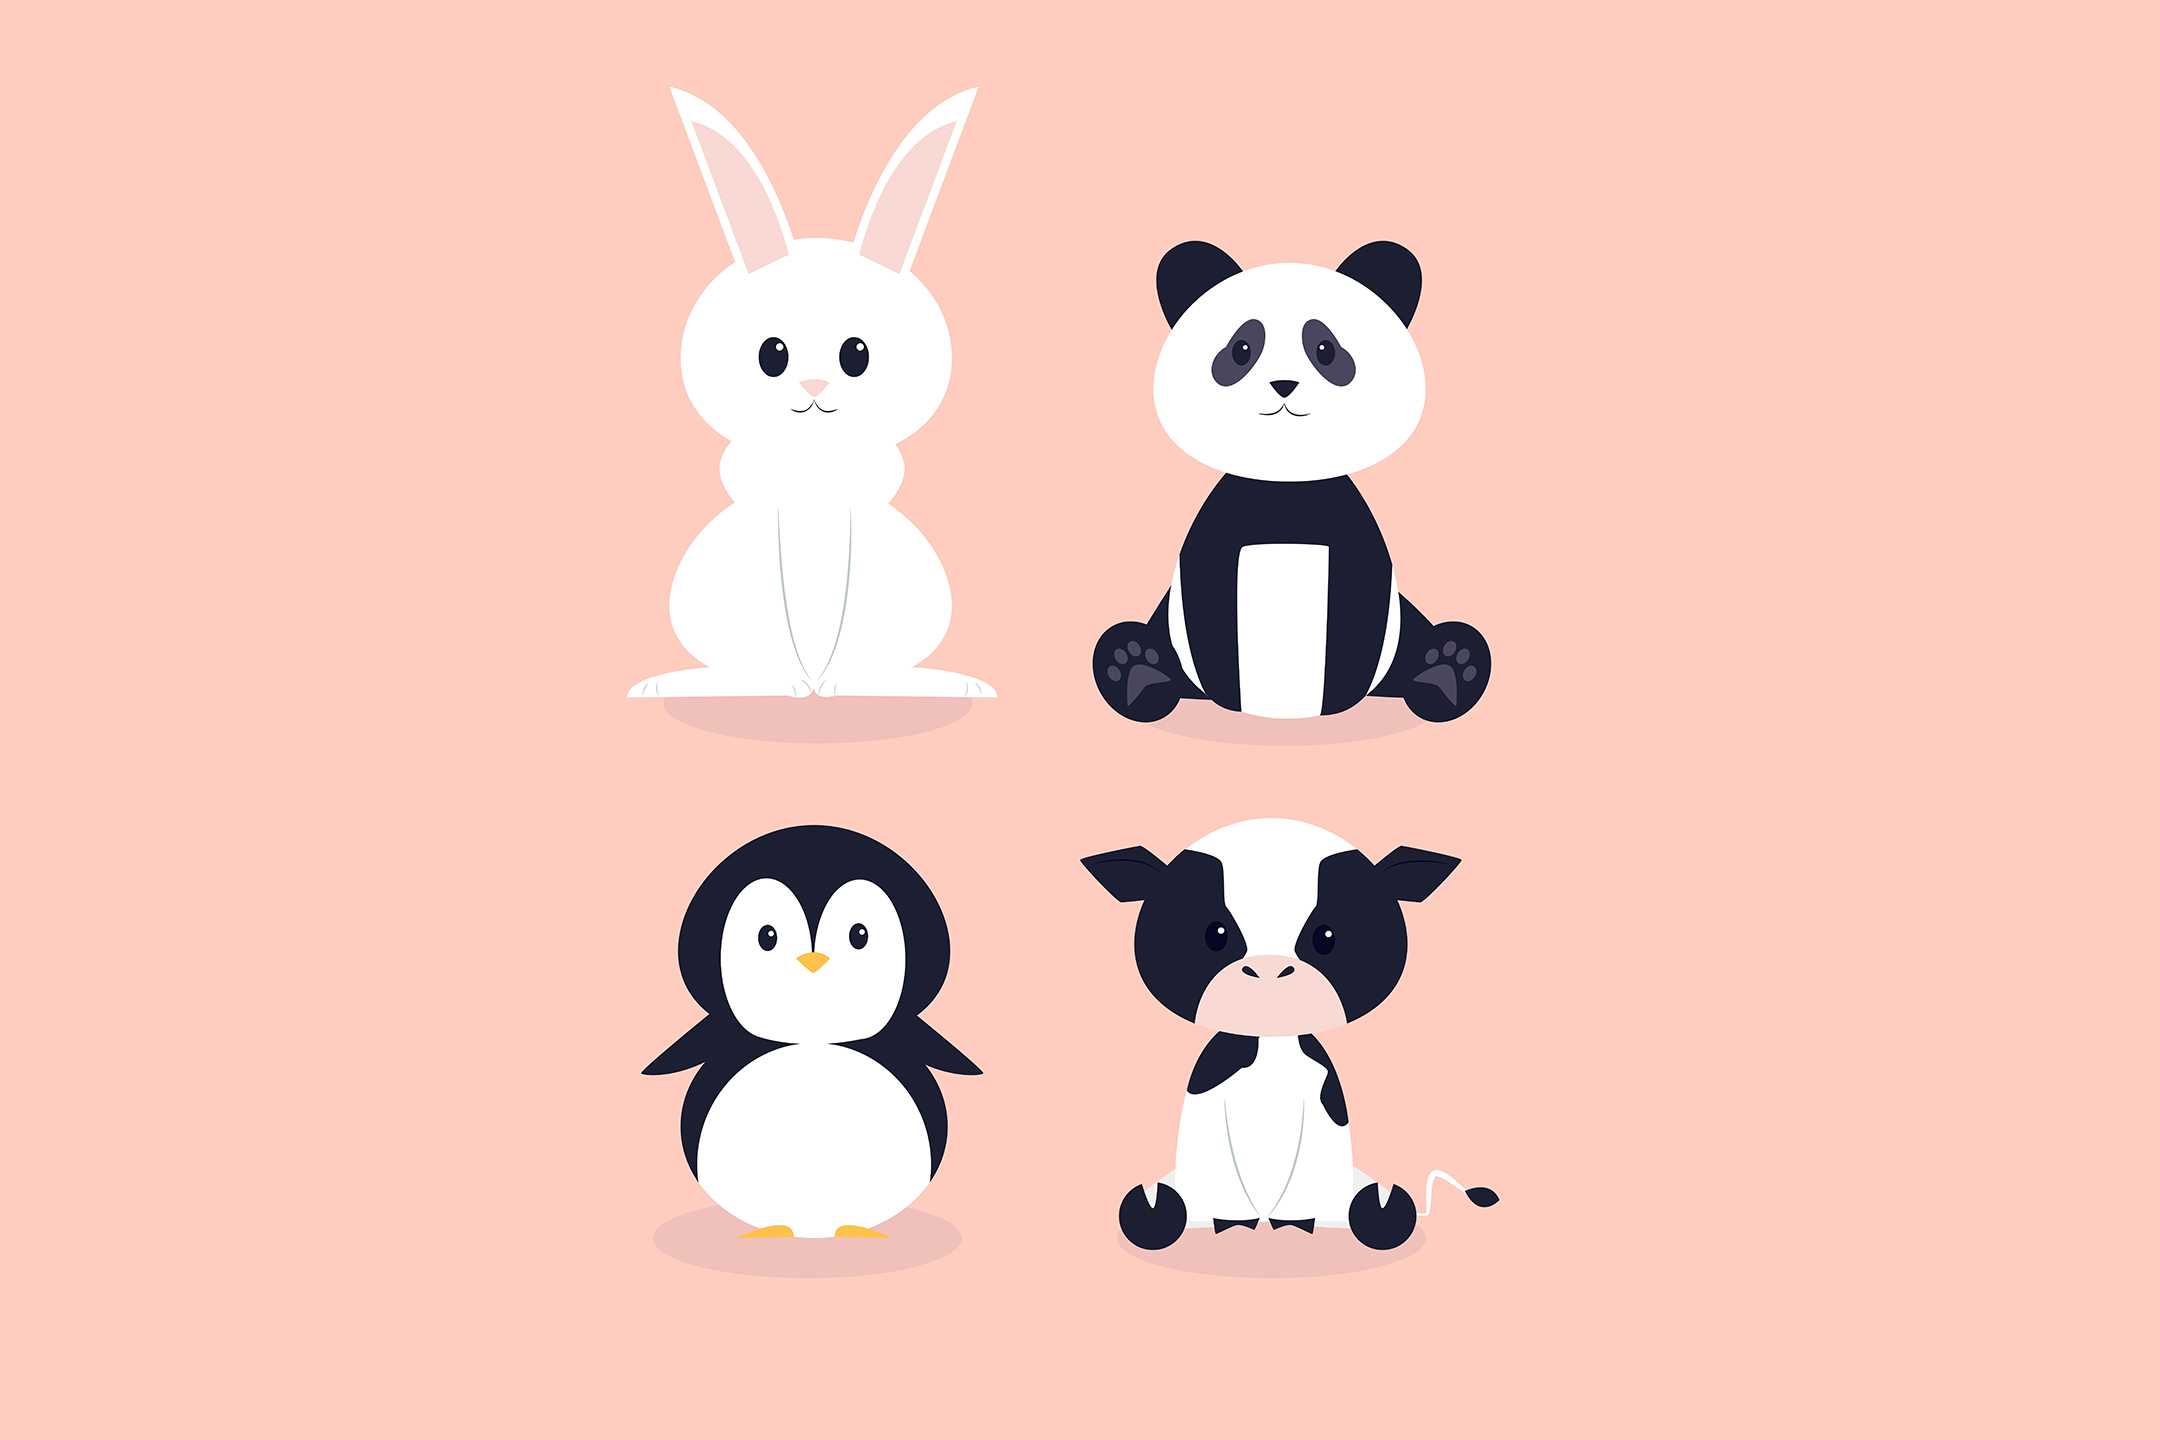 Download Free Hand Drawn Cute Animals Pack Graphic By Aprlmp276 Creative Fabrica for Cricut Explore, Silhouette and other cutting machines.